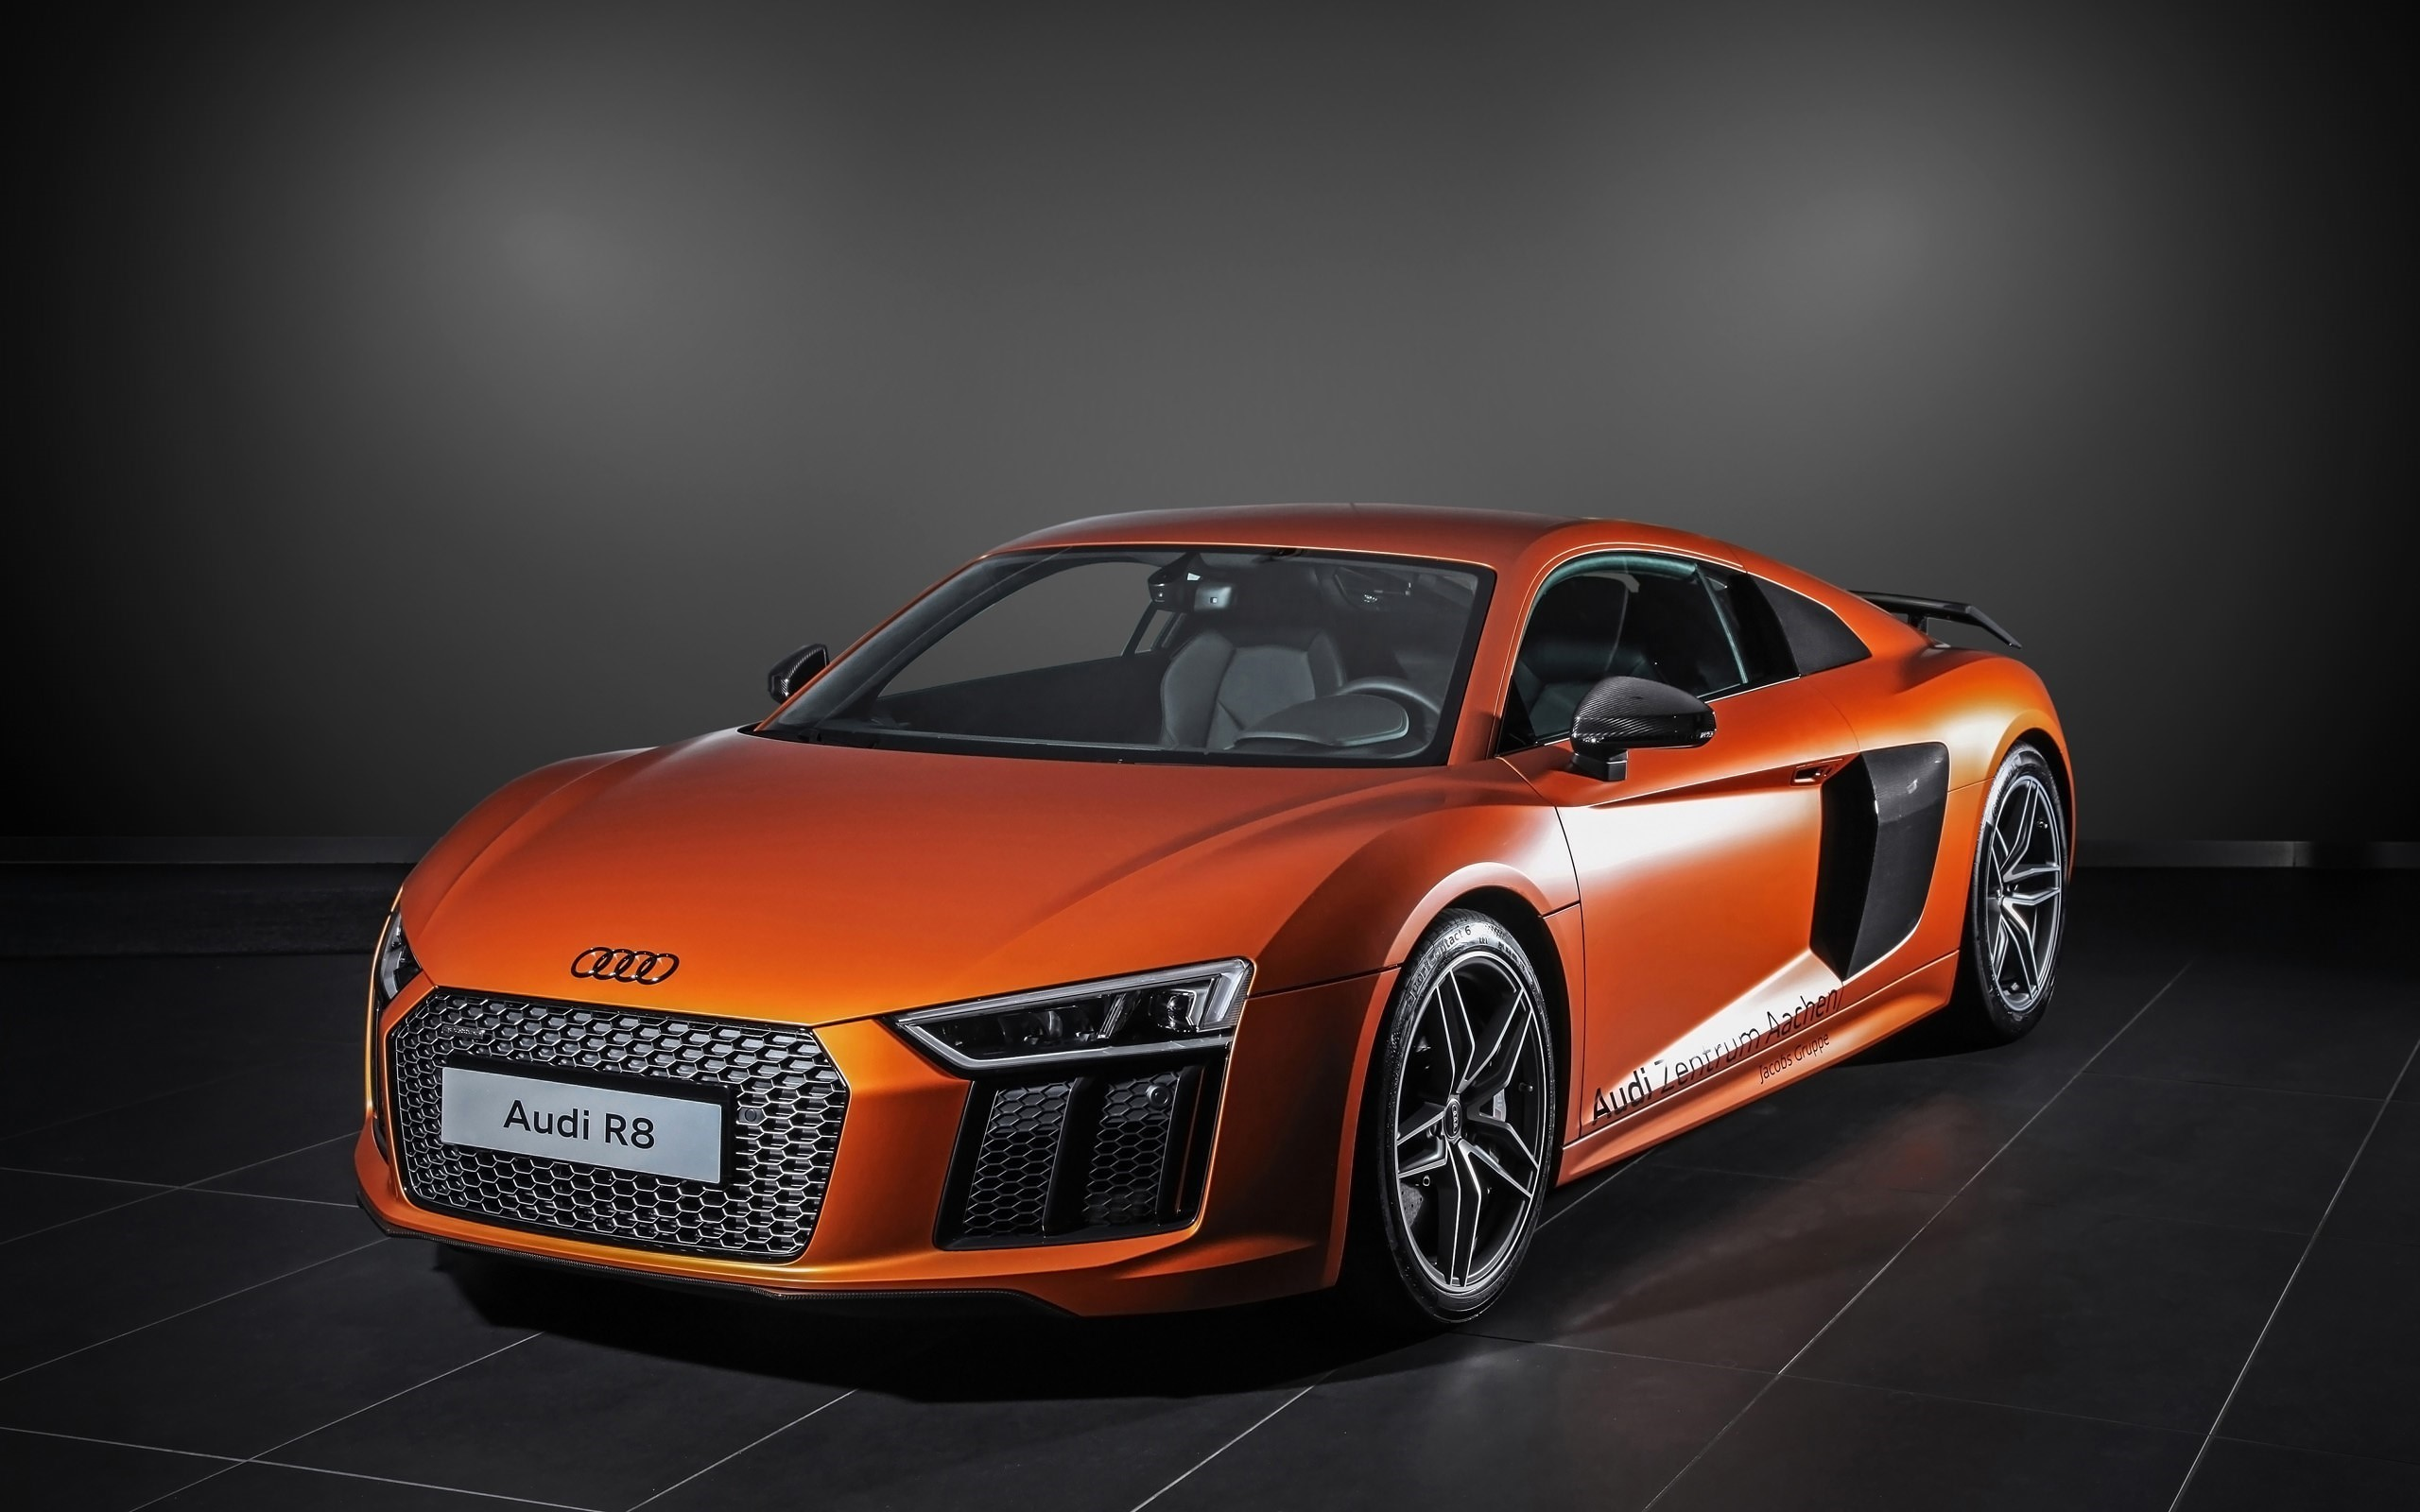 Audi R8 Front HD Background